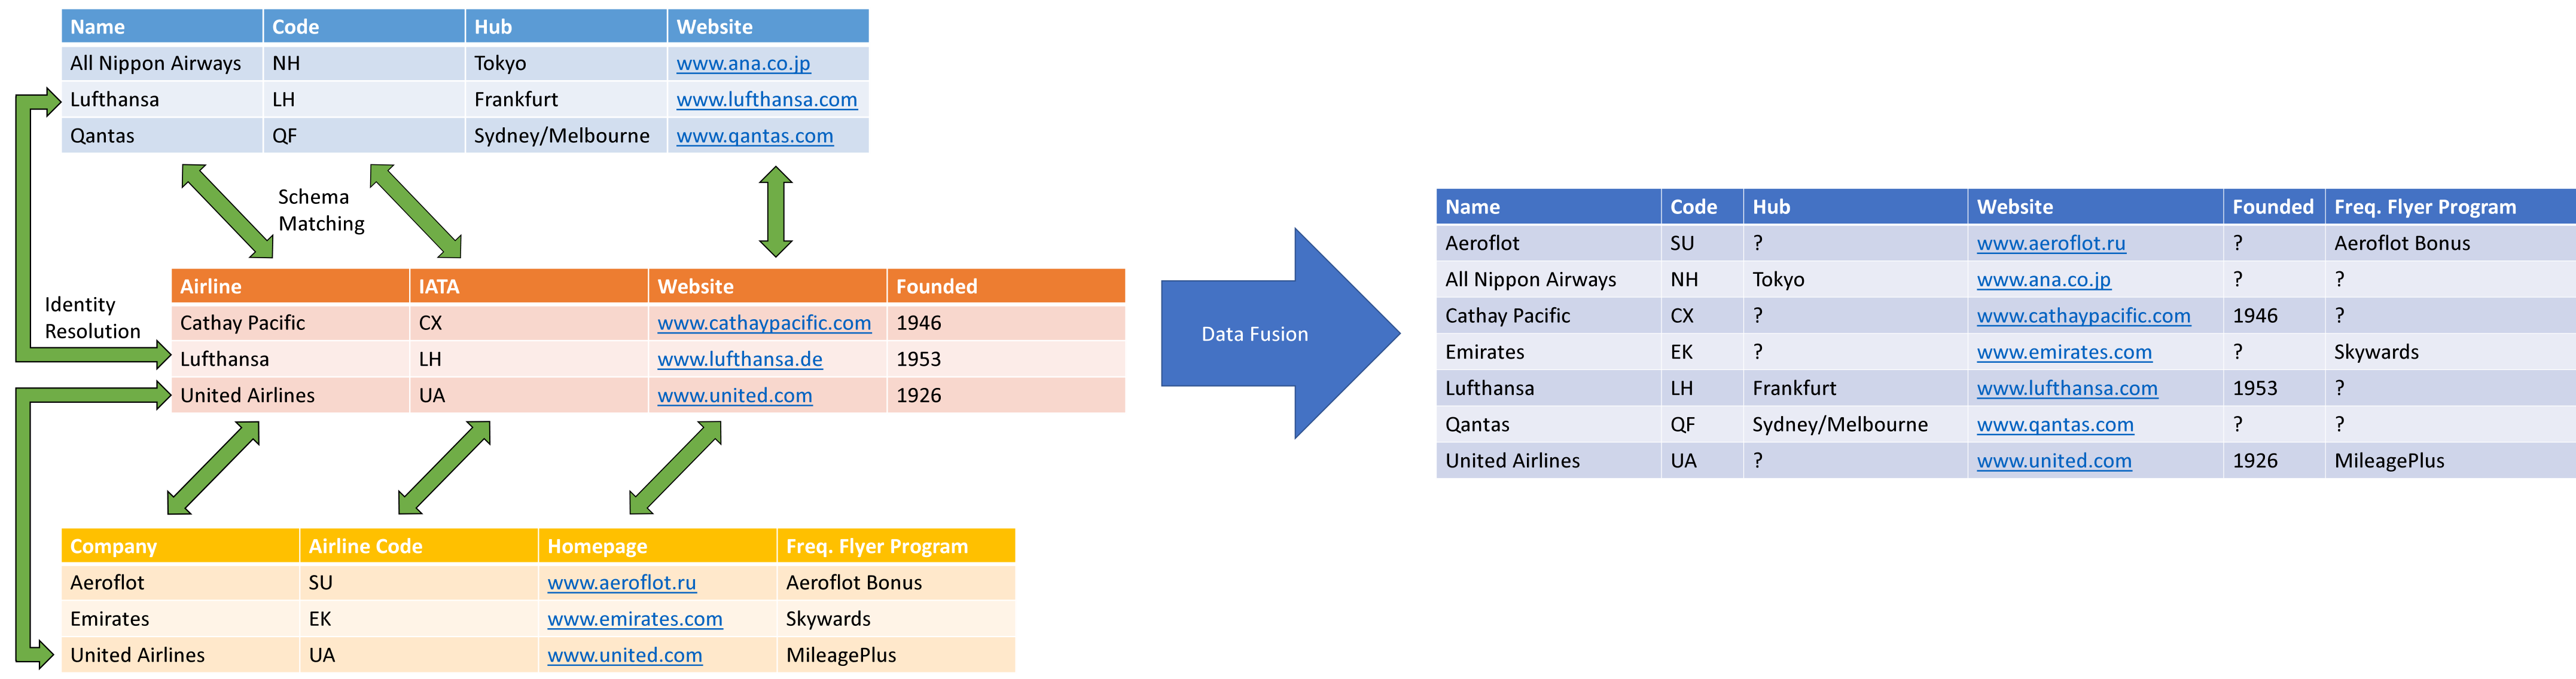 Data Integration Process Example